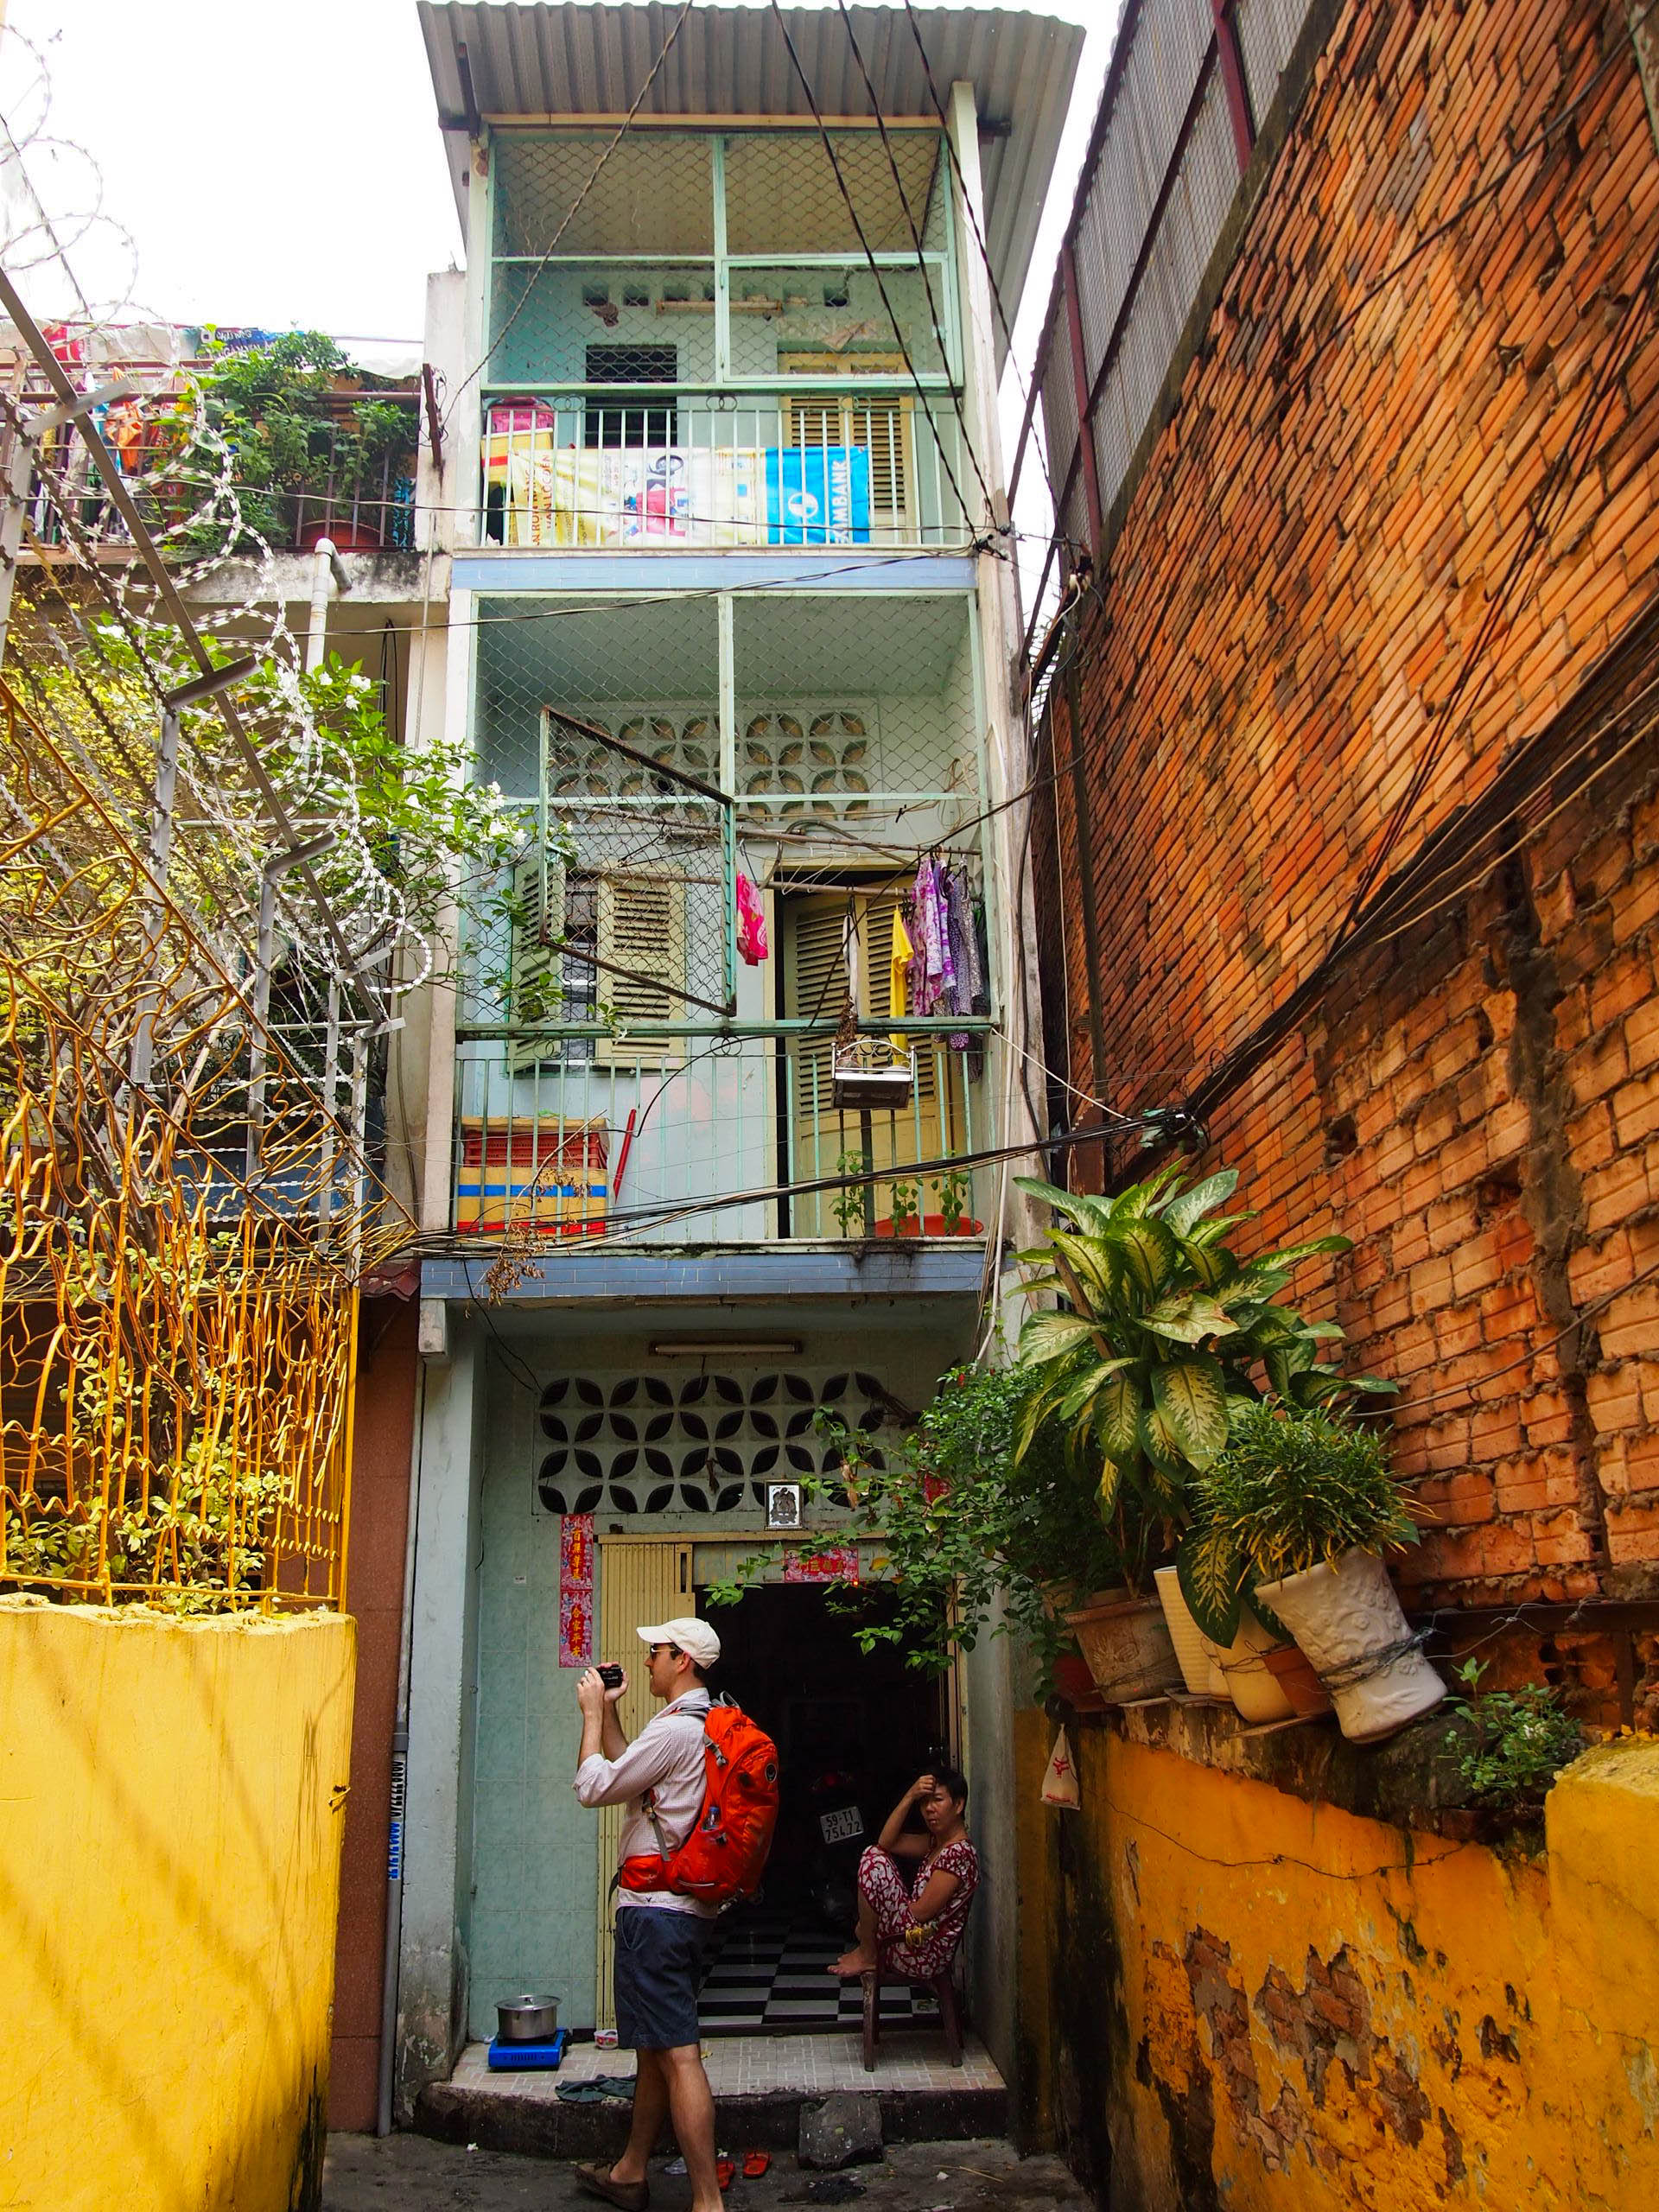 The alleyways most middle class Vietnamese call home. In the states, we would presume poor people lived here, but most of these homes are worth $200,000 USD.